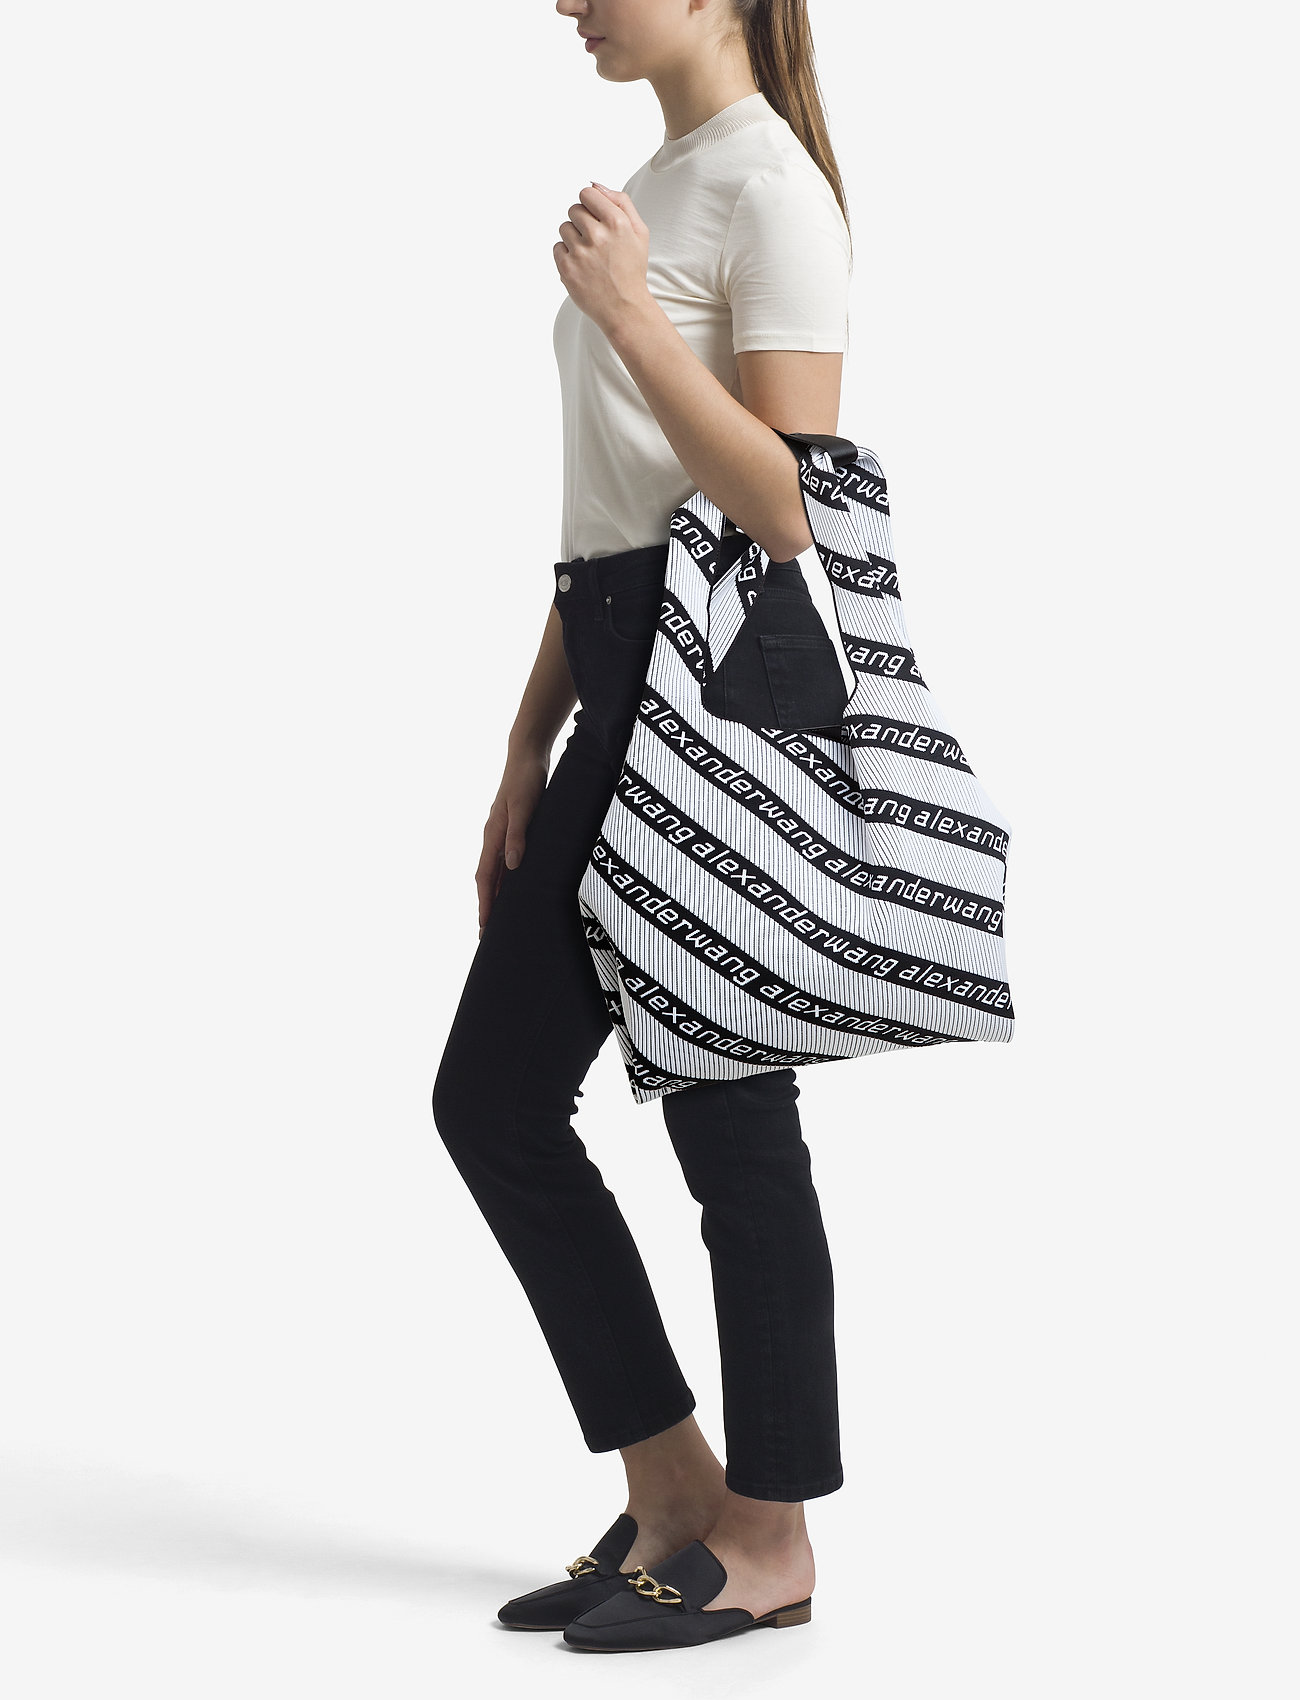 Alexander Wang KNIT JCQD SHOPPER IN WHT BLK DIAGONAL LOGO   Shoppers